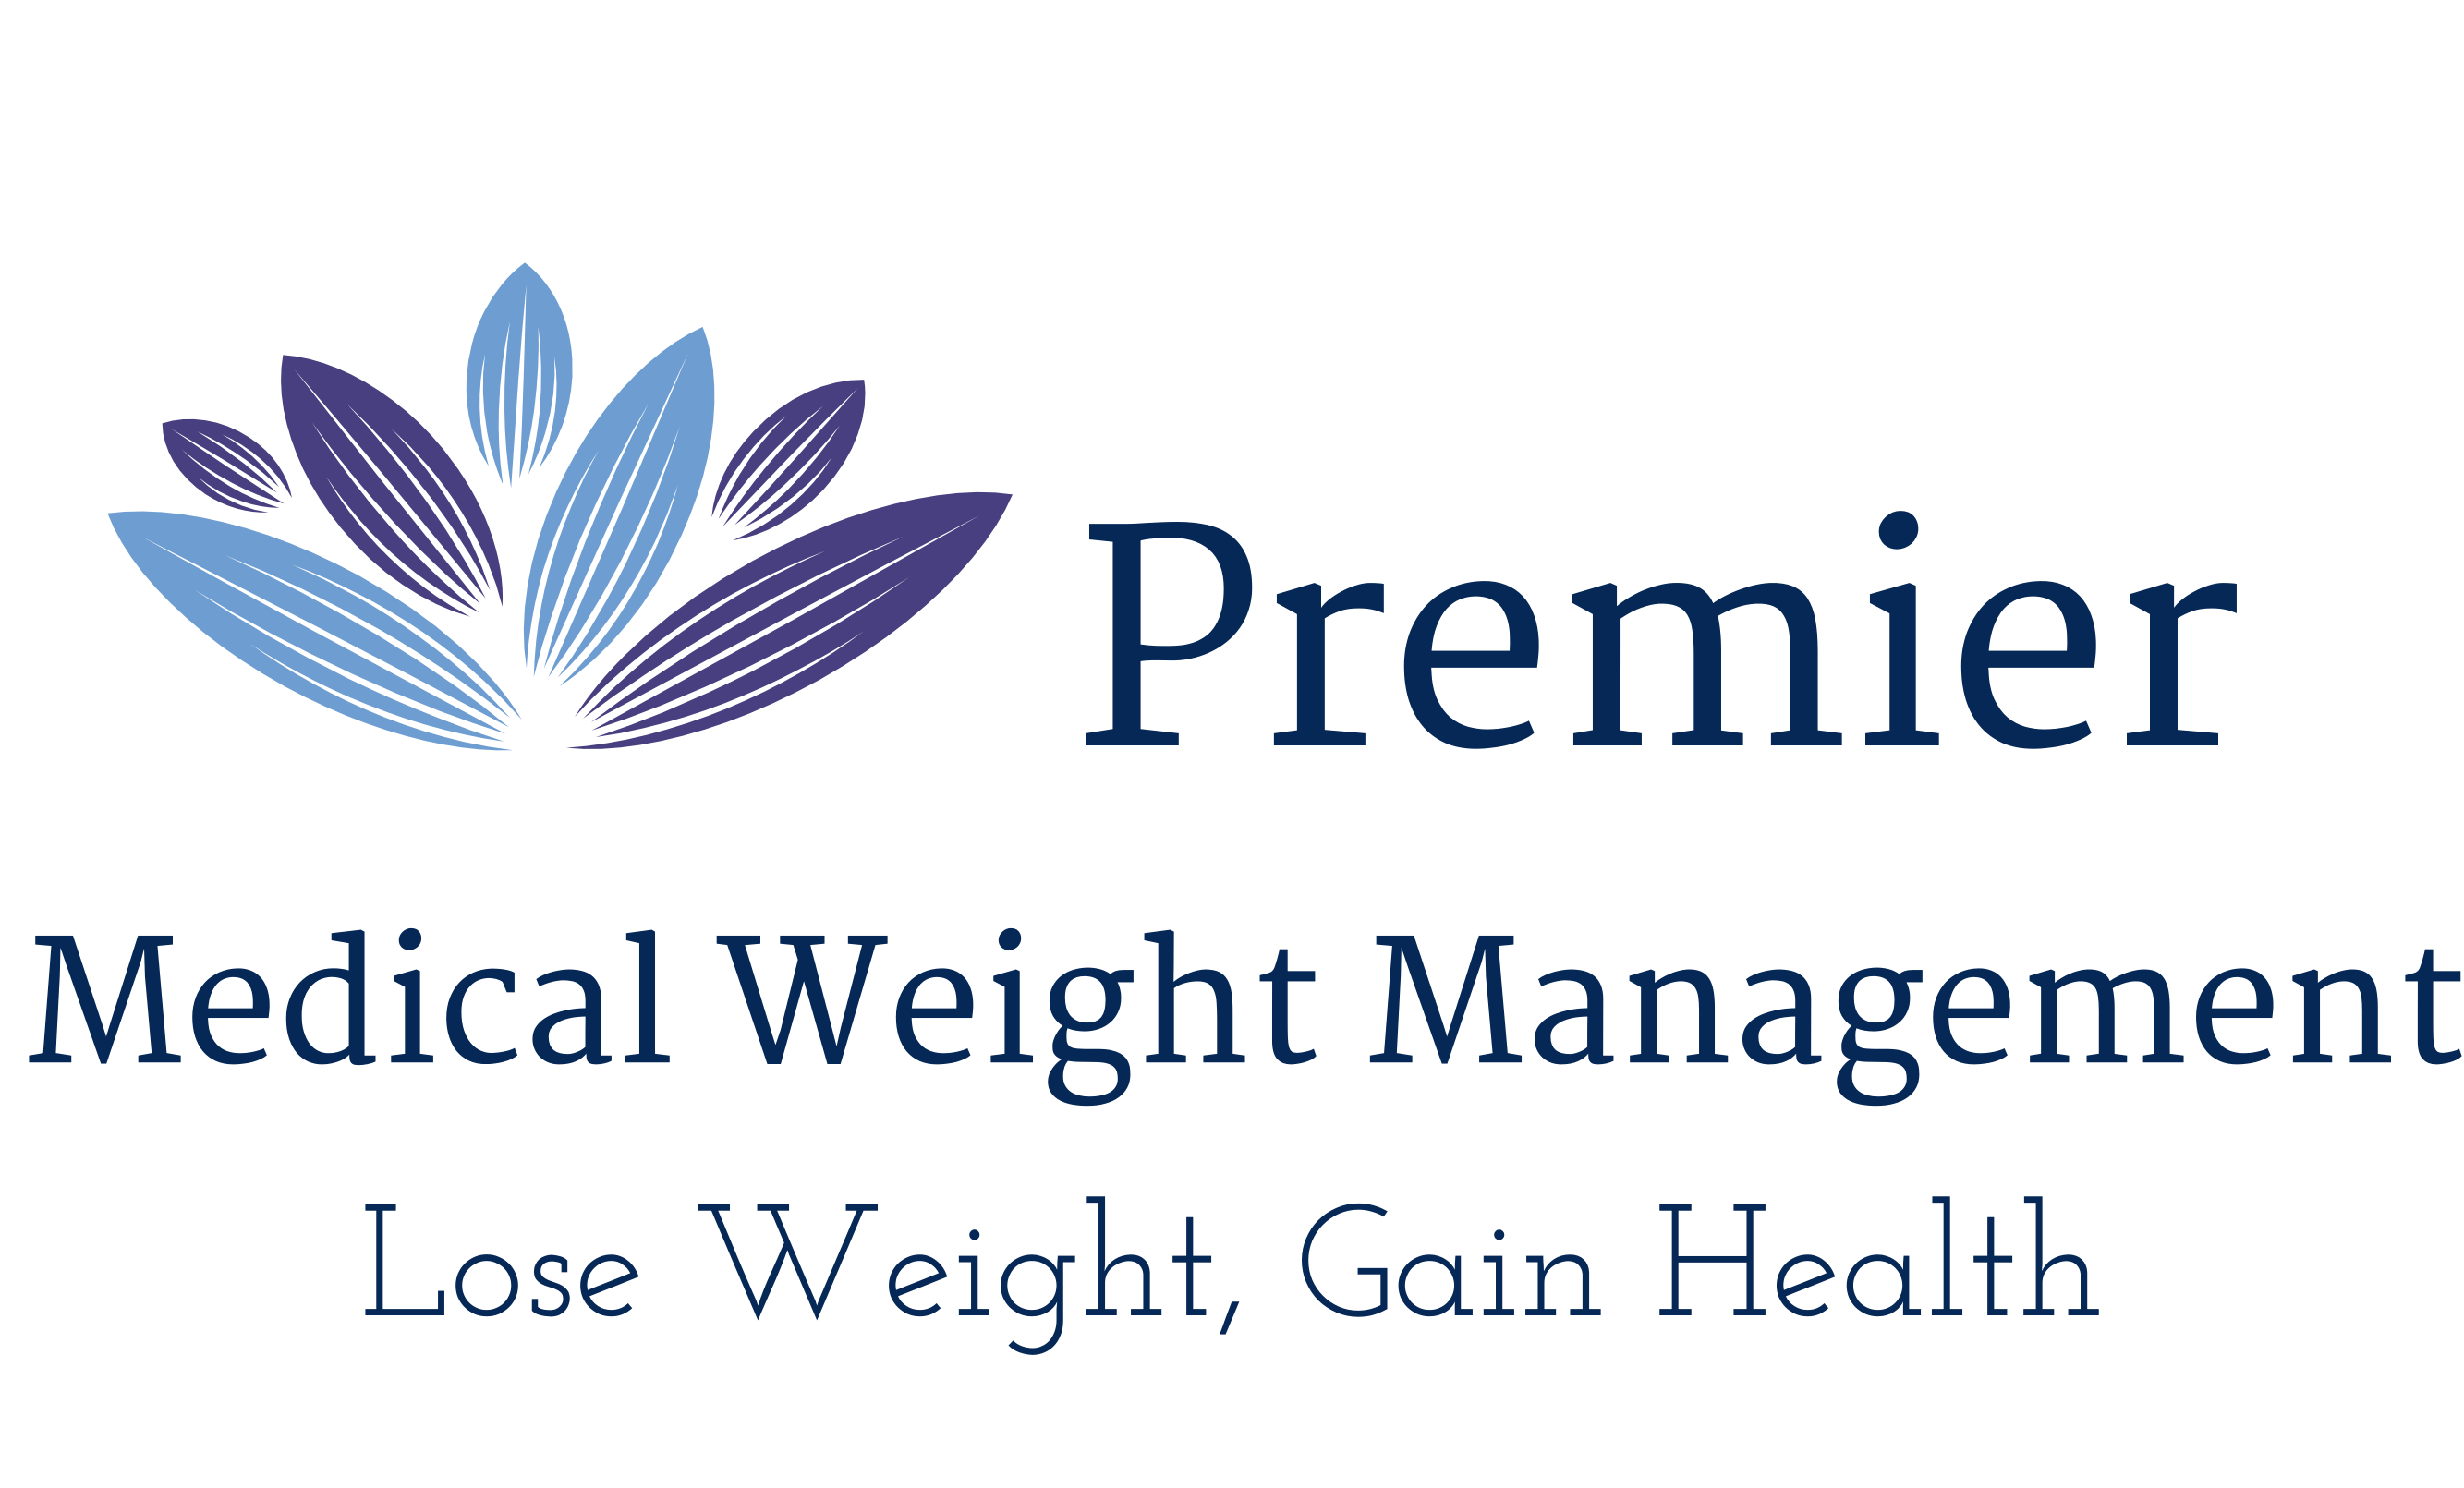 Premier Medical Weight Management